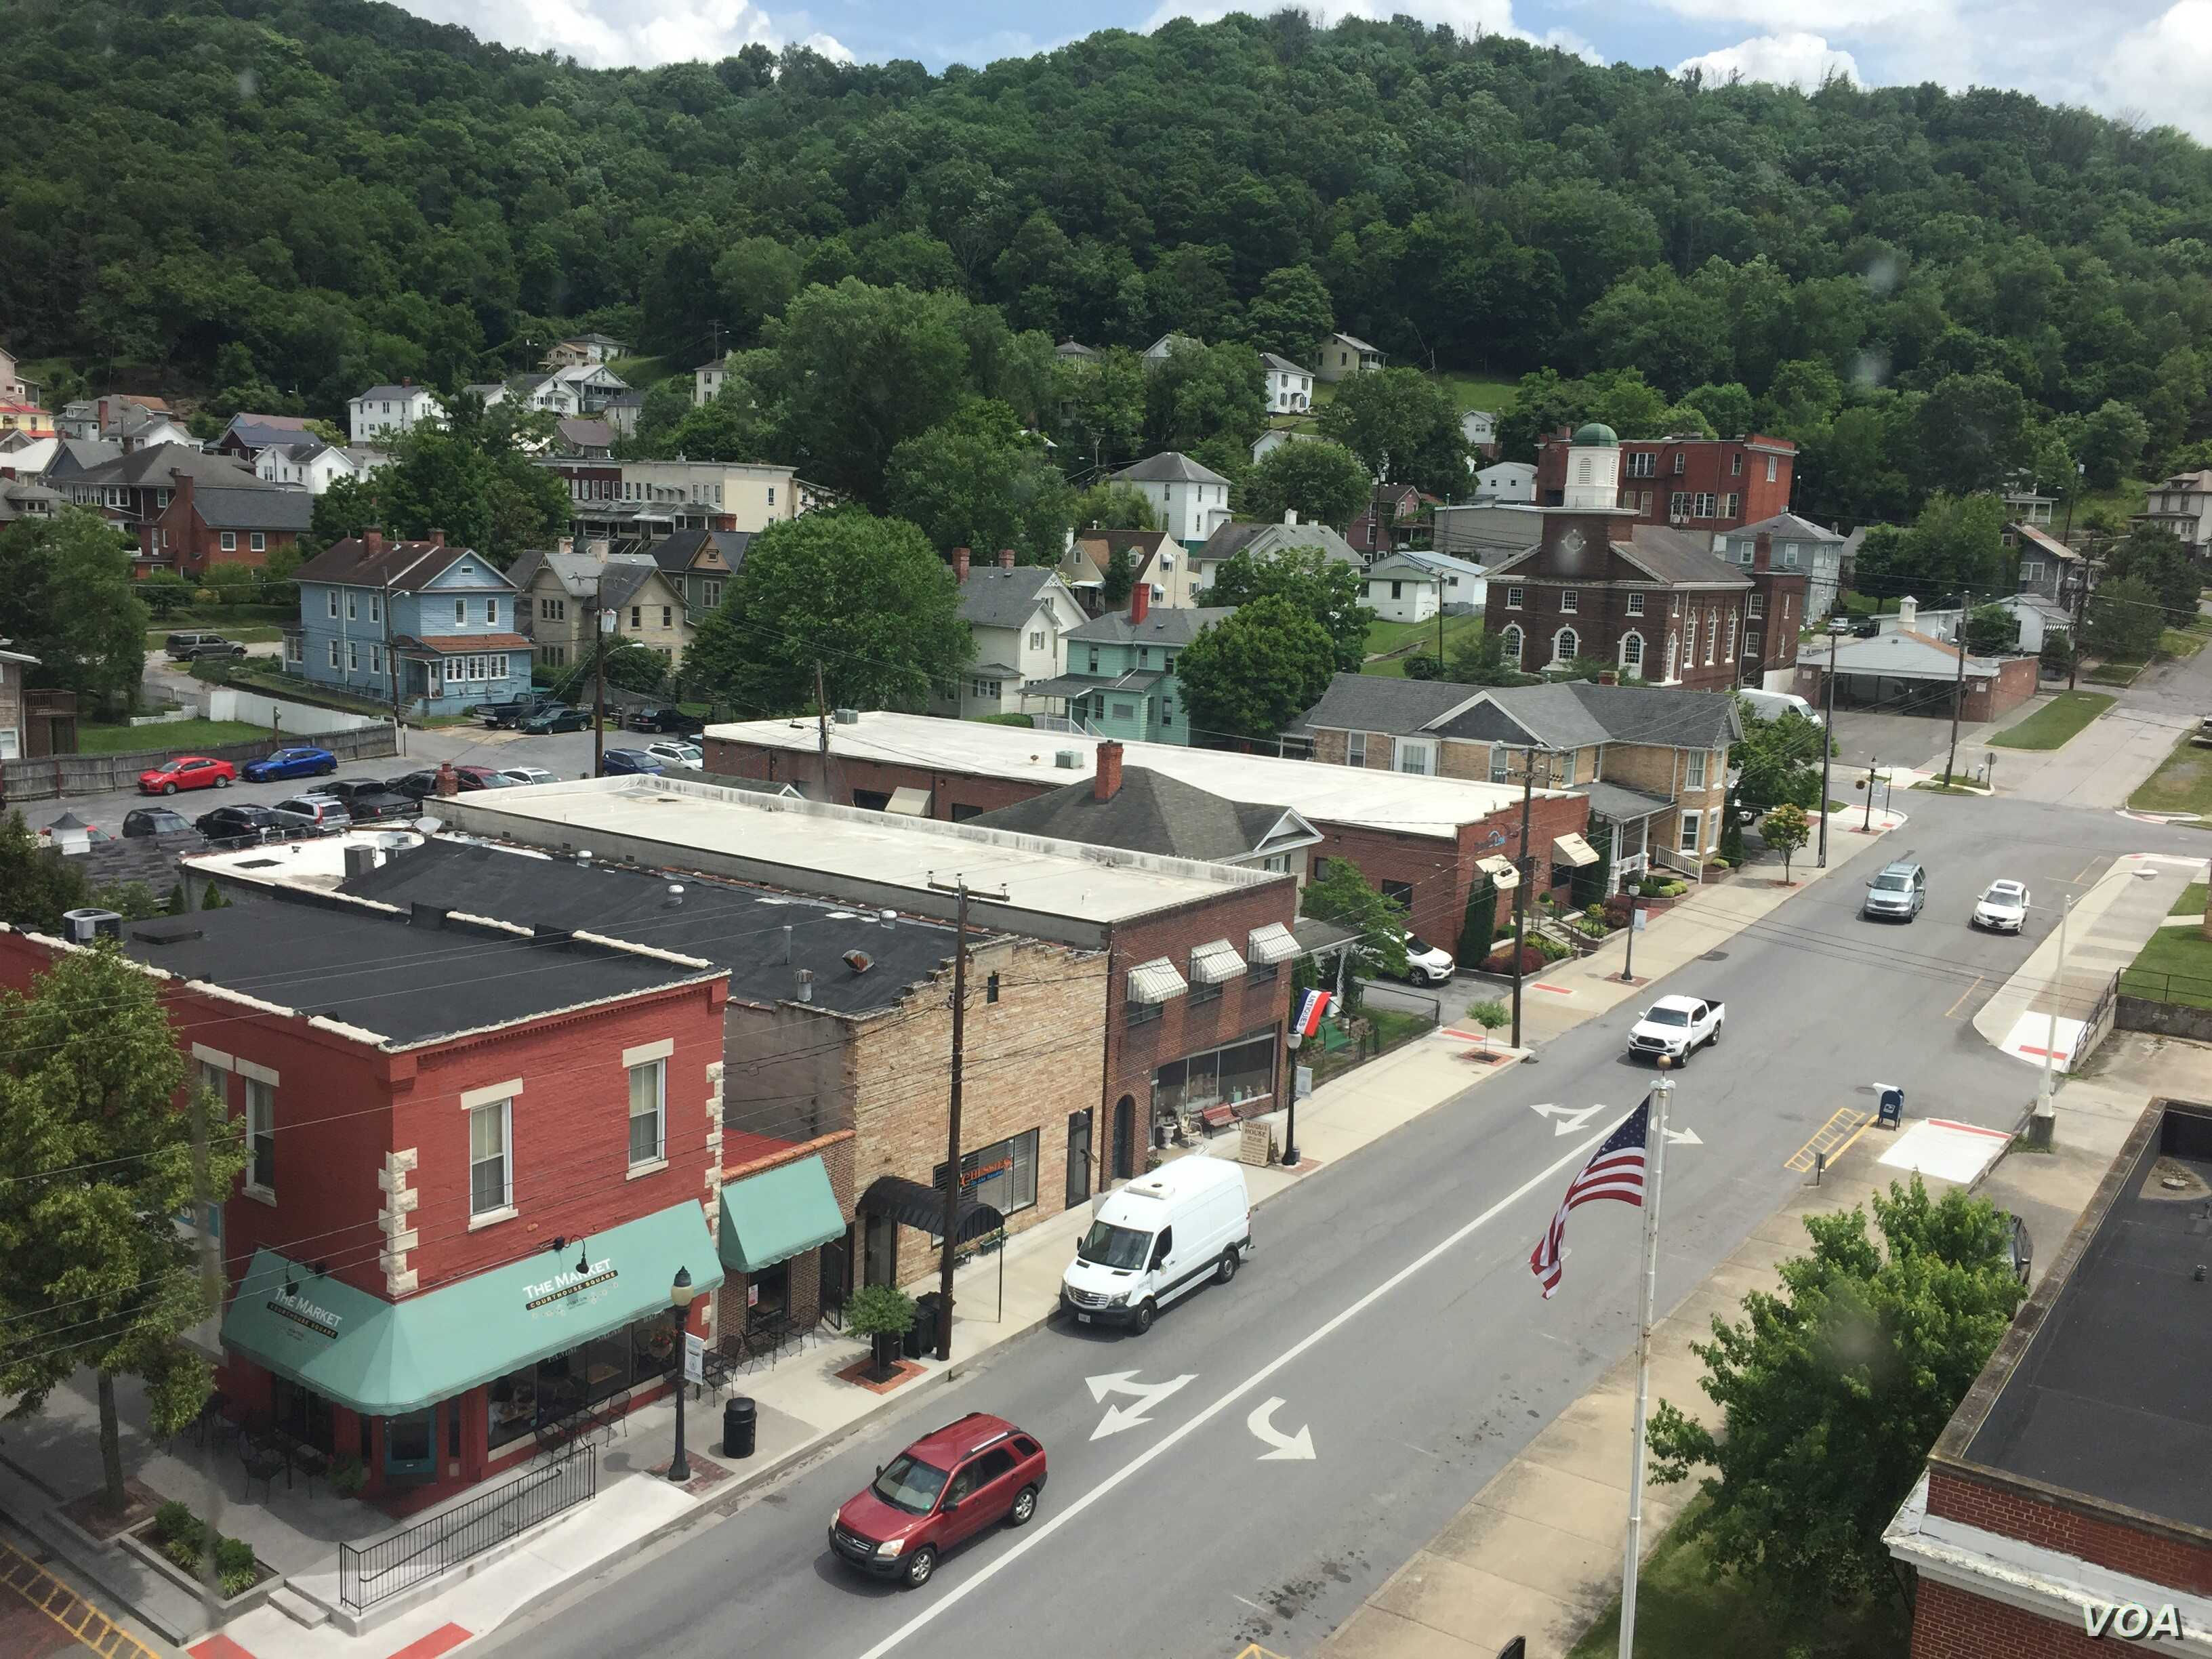 The town of Hinton, West Virginia has a number of flourishing businesses, thanks to high-speed internet connectivity.